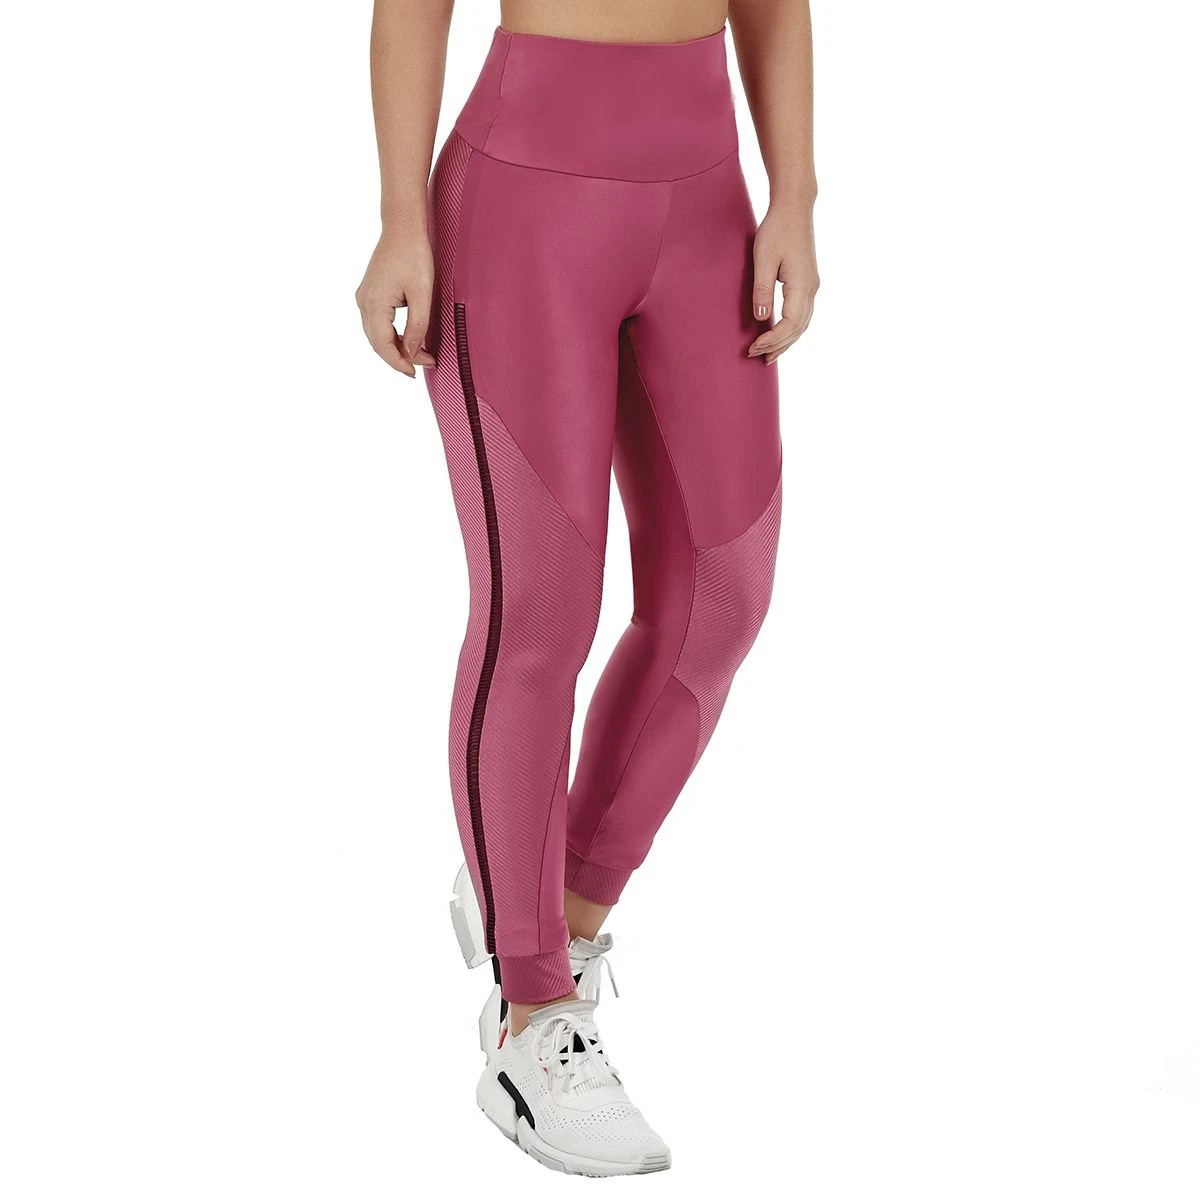 Legging Alto Giro Atletika Elastic Point